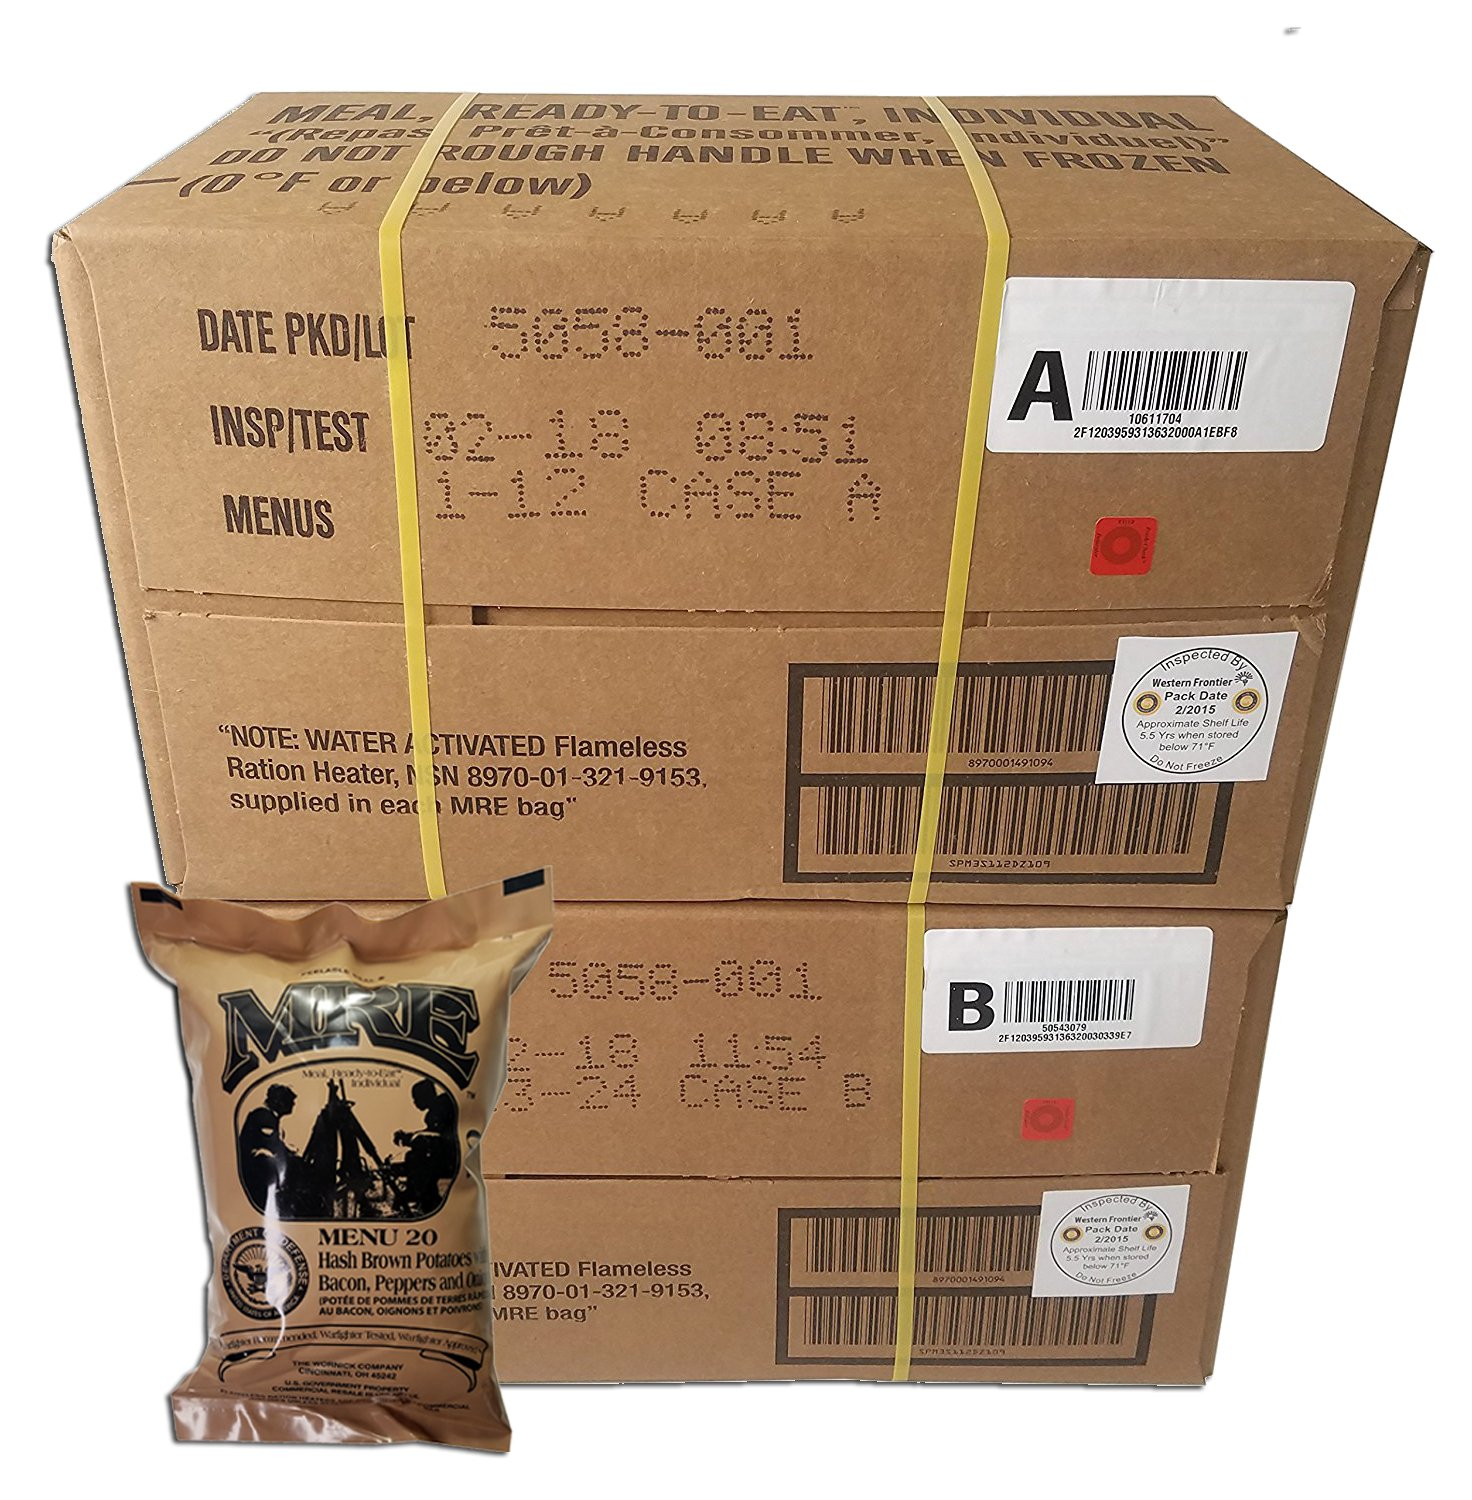 ULTIMATE MRE Case A and Case B Bundle, 24 Meals with 2018 Inspection Date. Military Surplus Meal Ready to Eat with Western Frontier's Inspection and Guarantee. by Western Frontier